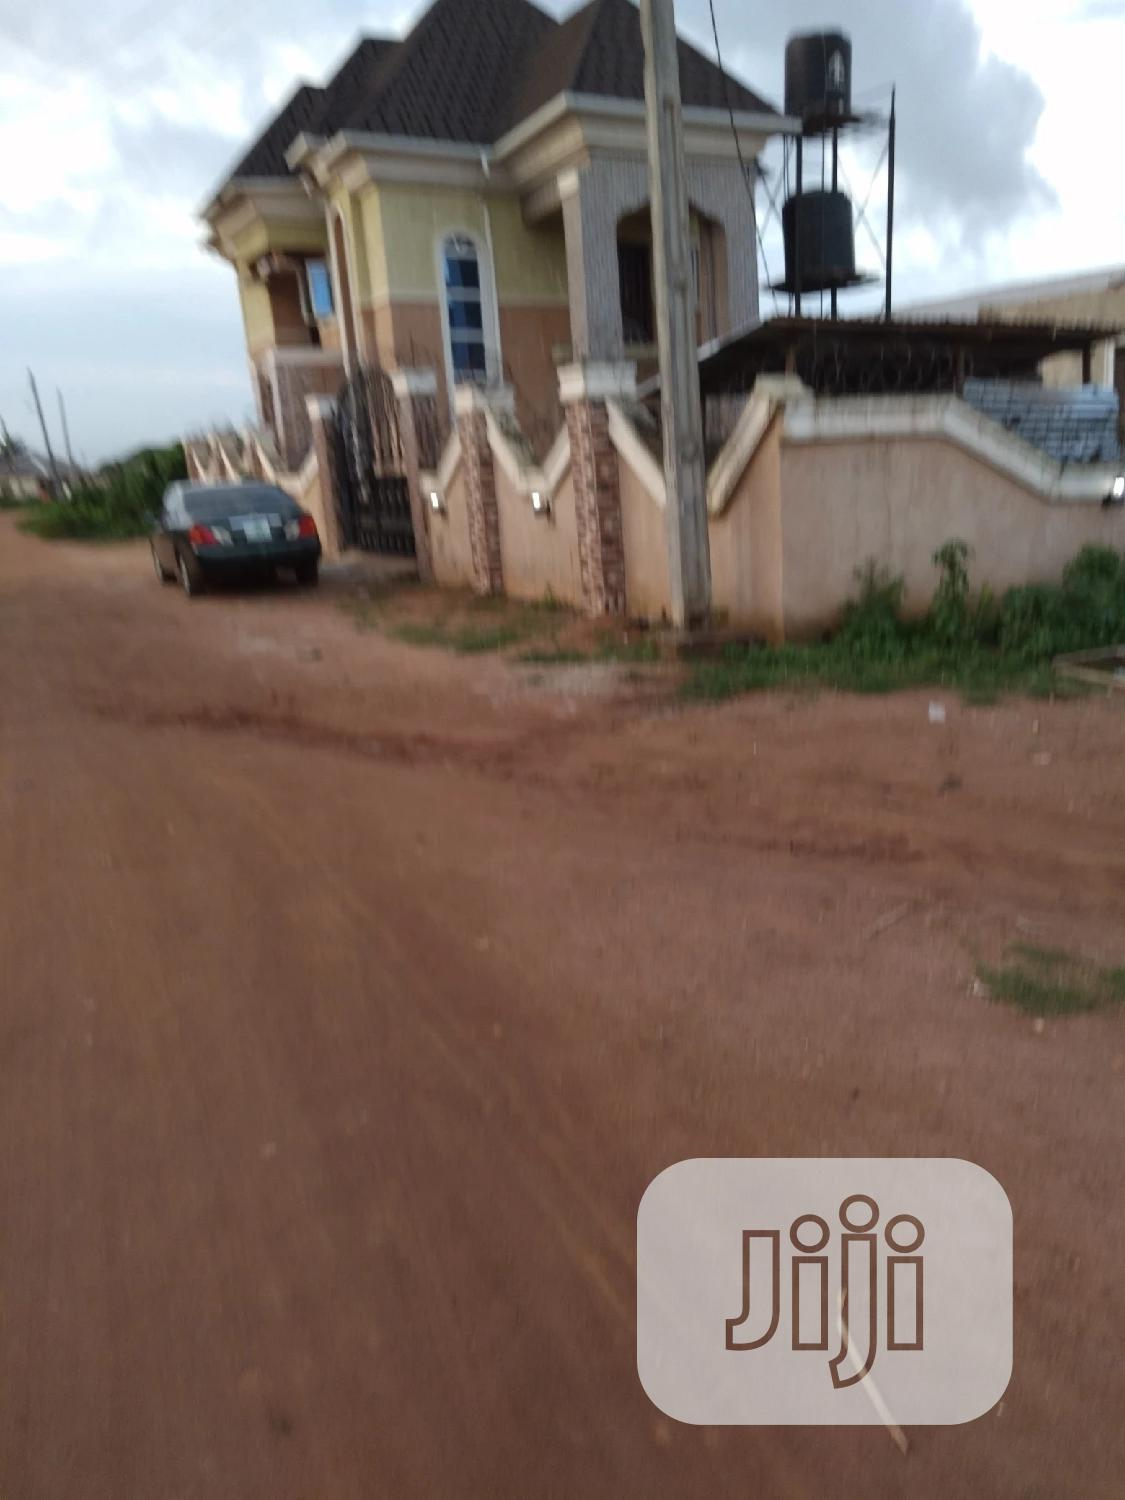 4 Bedroom Duplex For Sale | Houses & Apartments For Sale for sale in Ikorodu, Lagos State, Nigeria